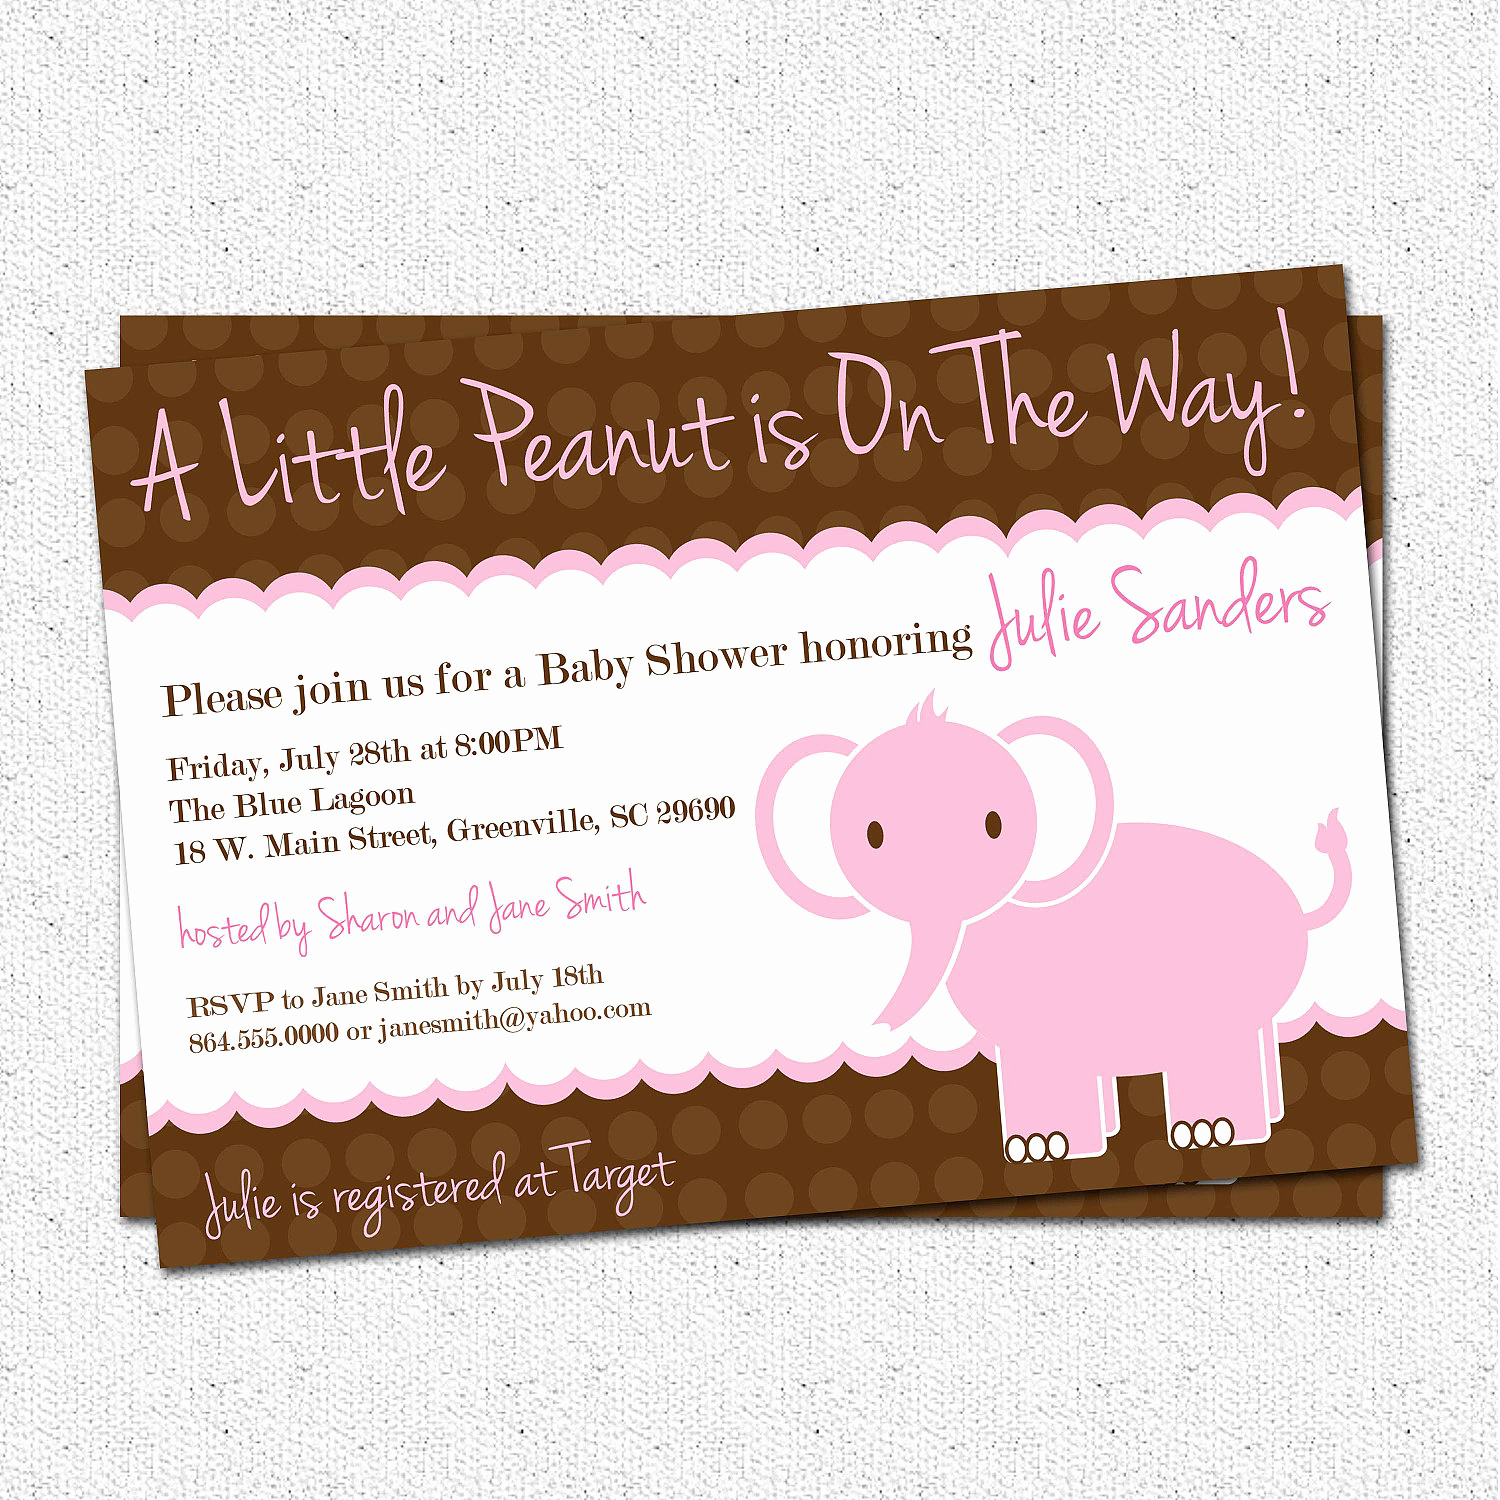 Elephant Baby Shower Invitation Fresh Baby Shower Invitation Girl Elephant Little Peanut Pink